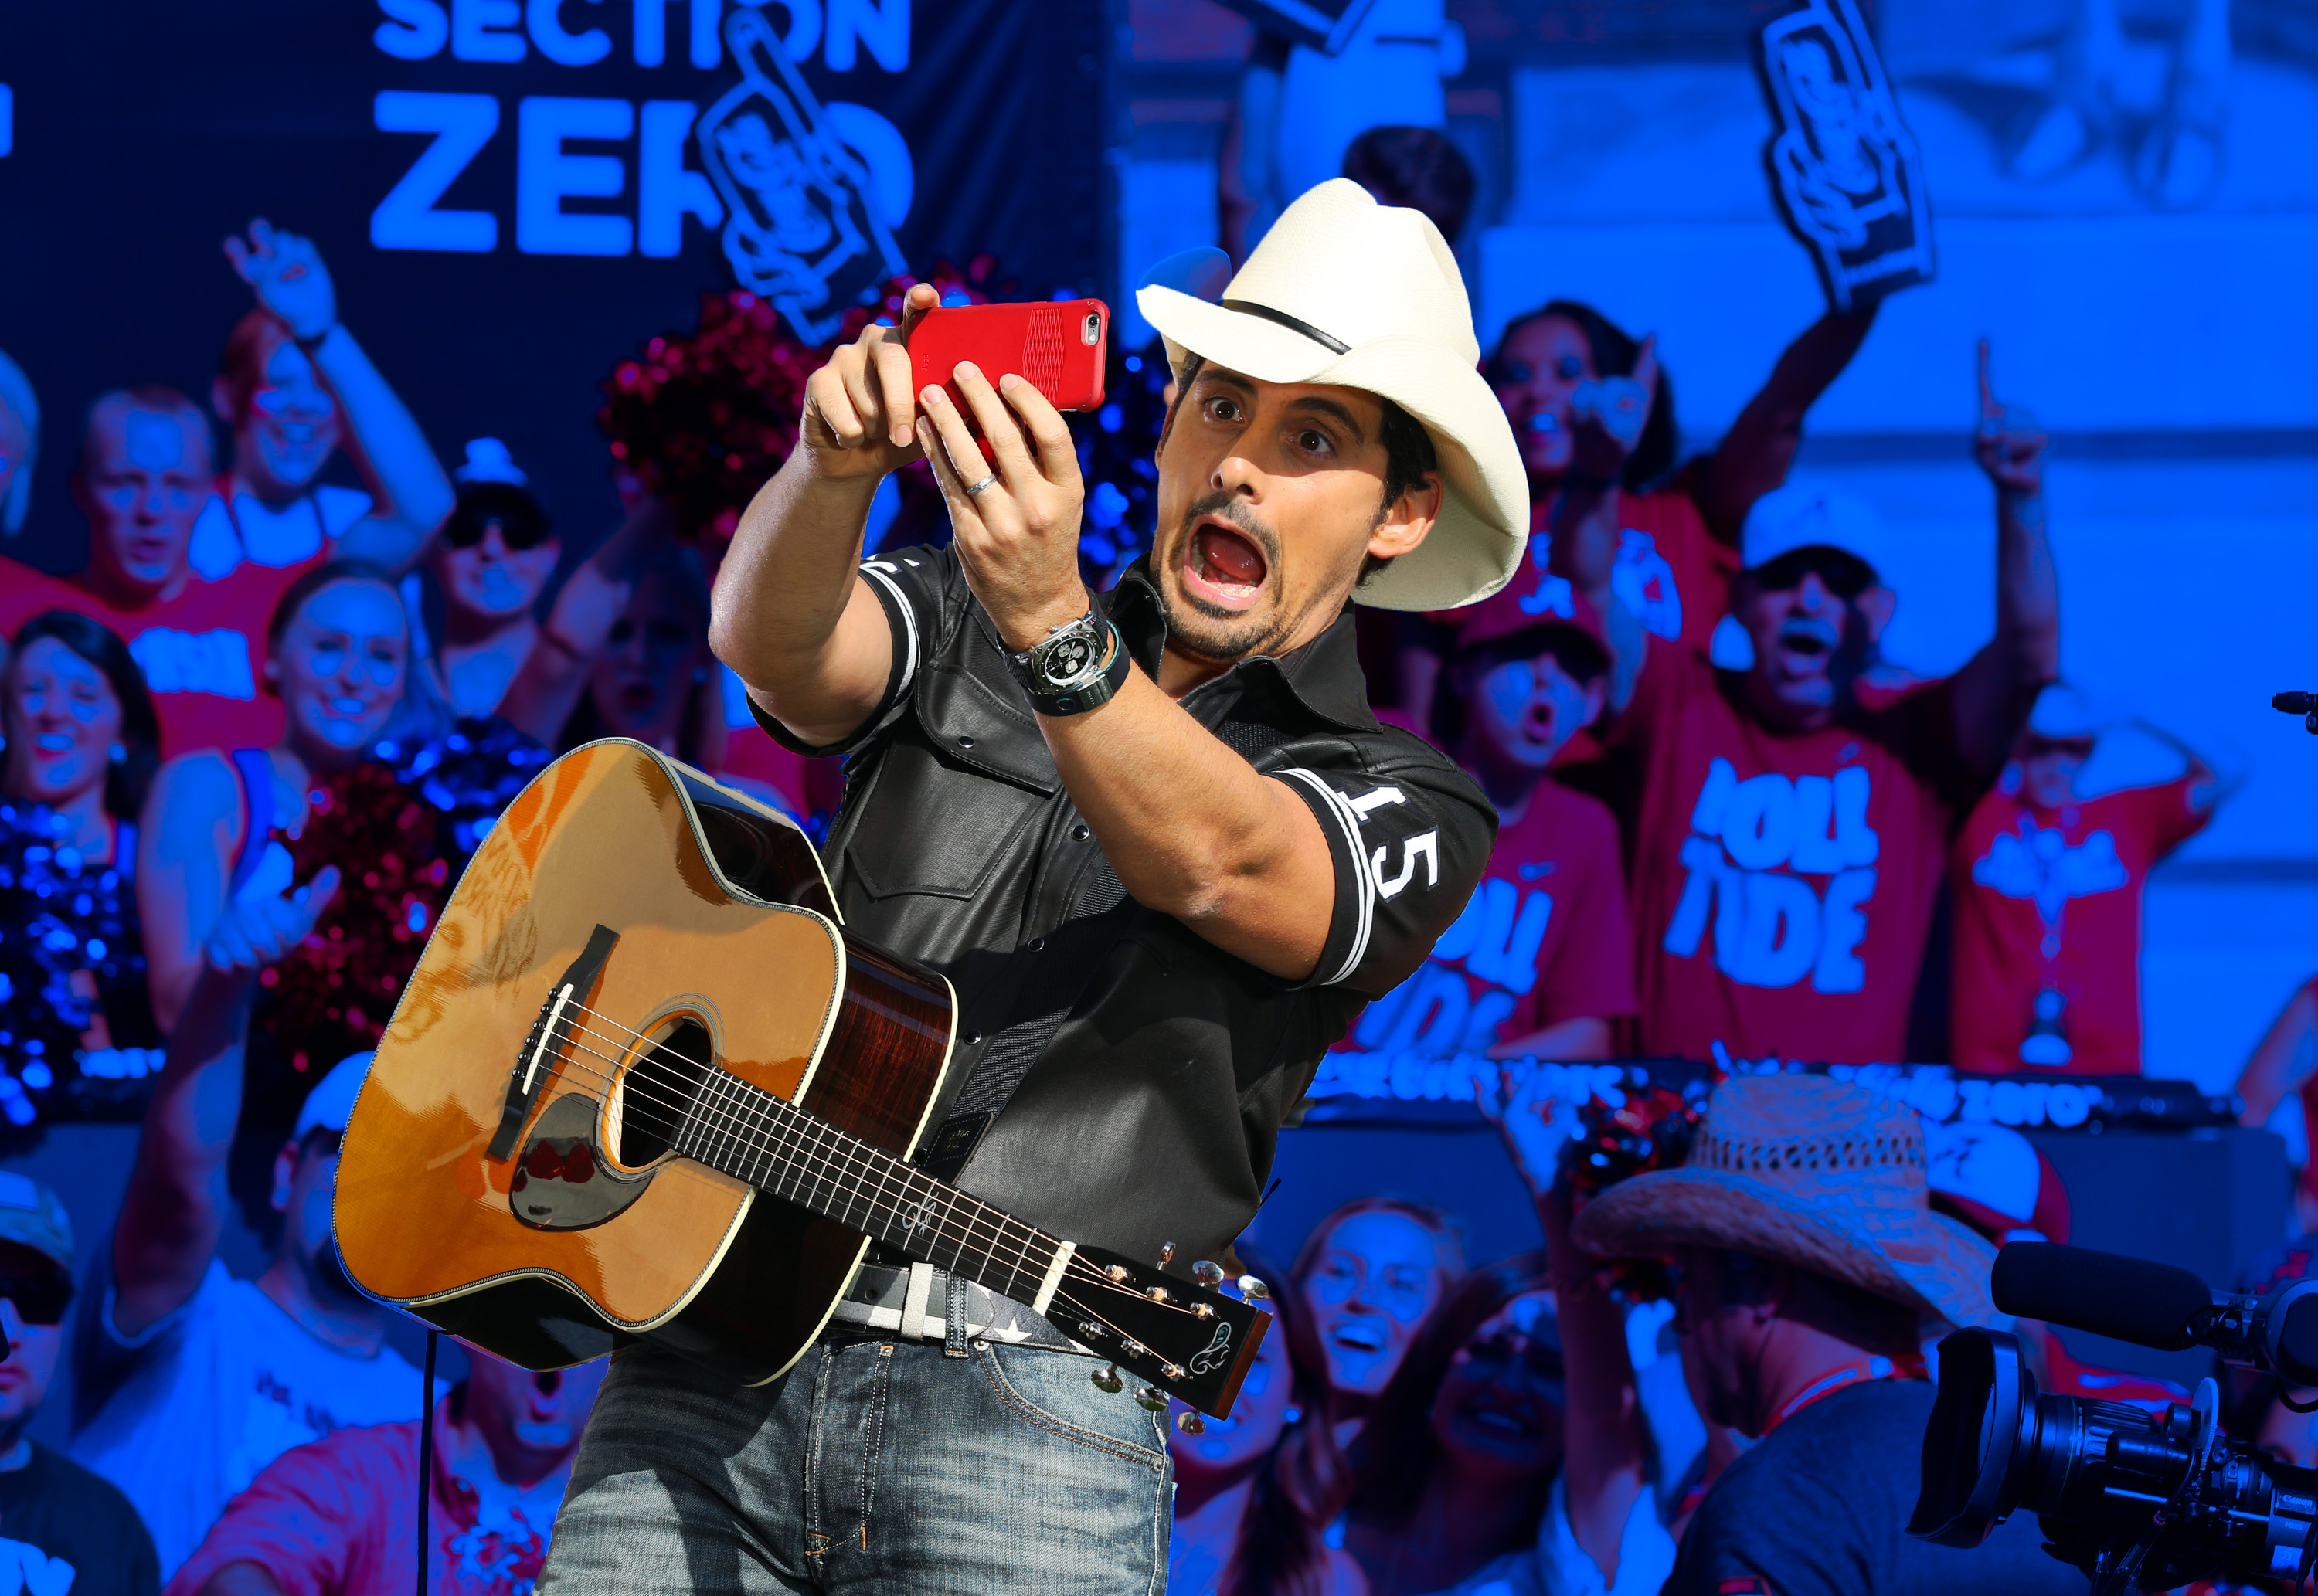 Brad Paisley singing a college football song